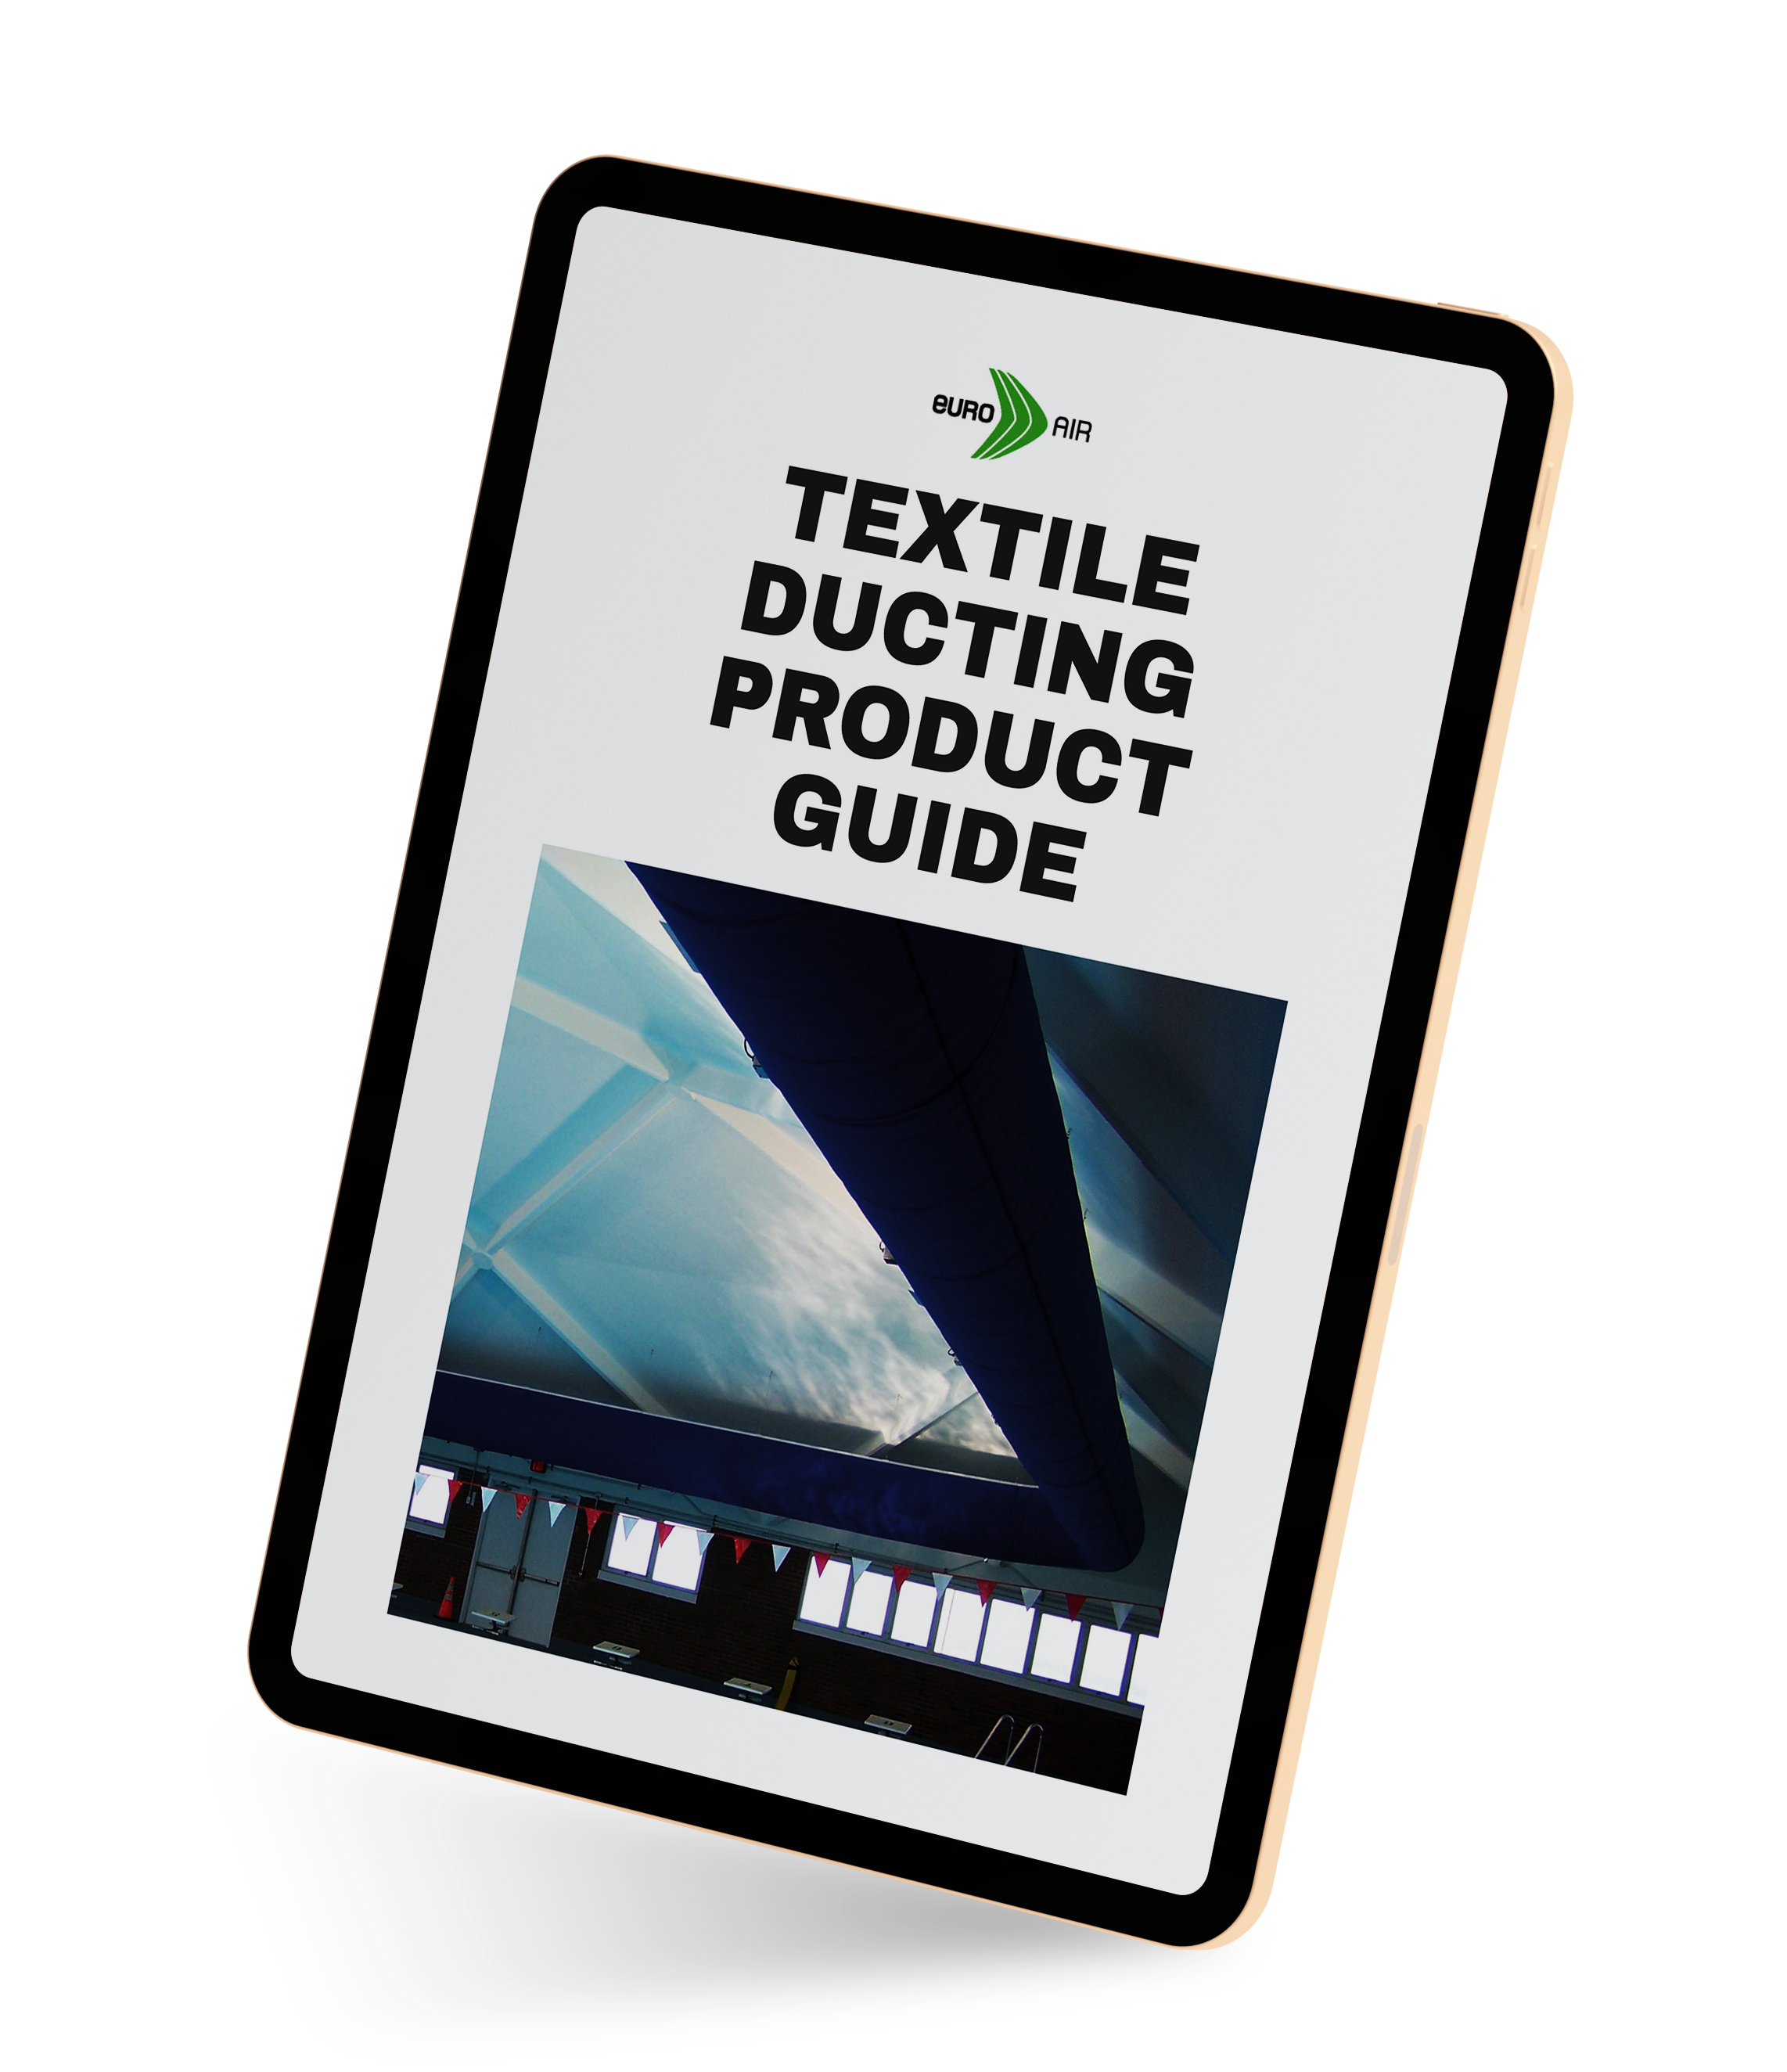 Textile ducting product guide e-book preview